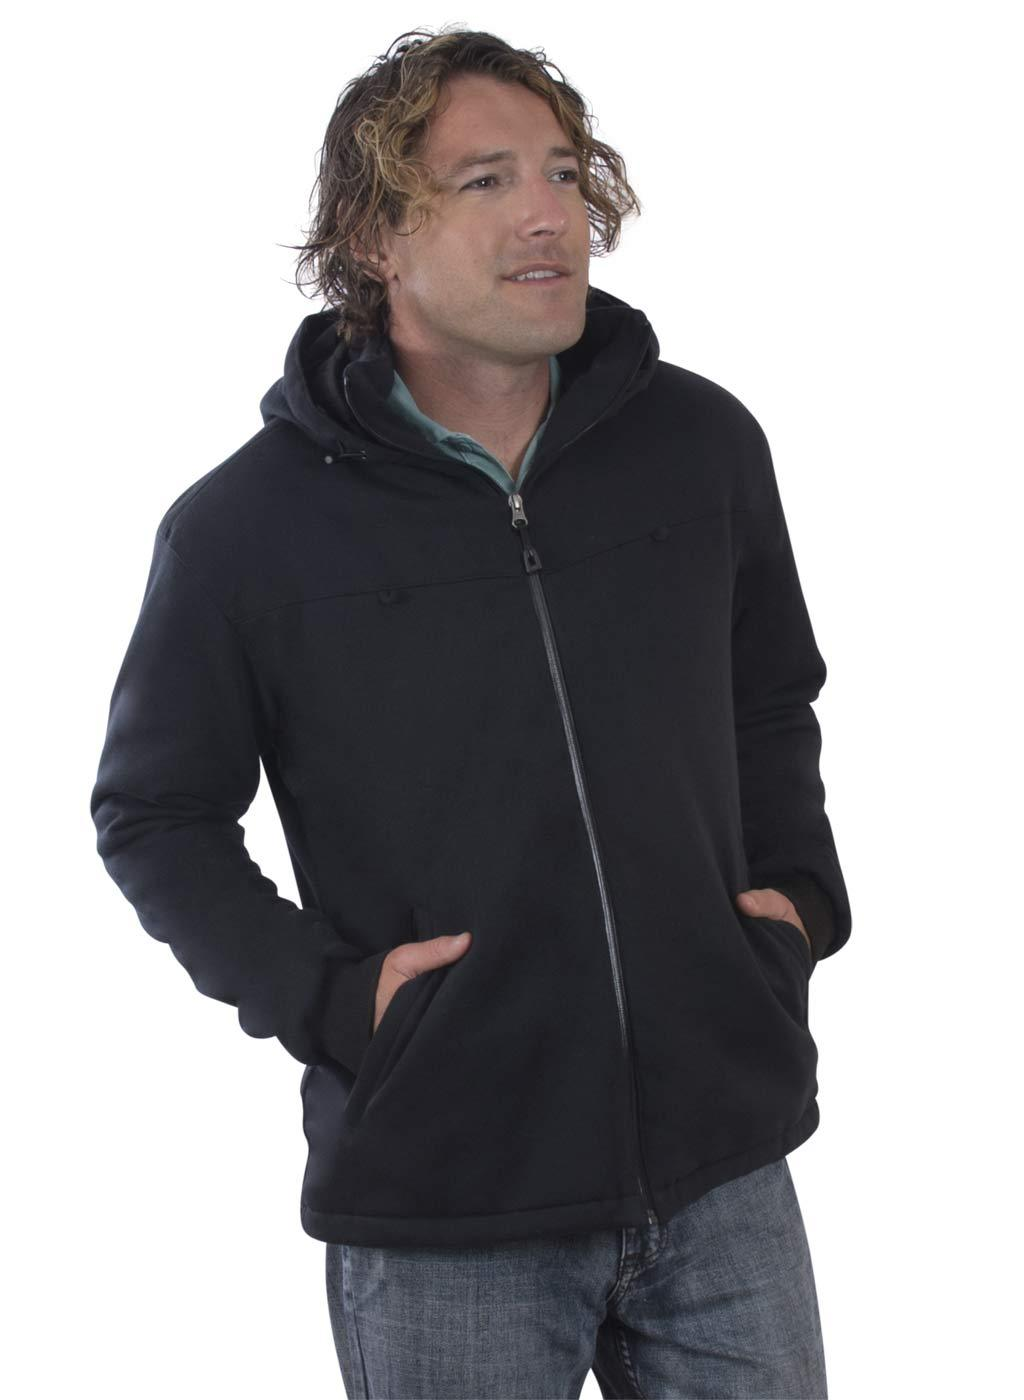 Men's Sweatshirt Joey Travel Jacket